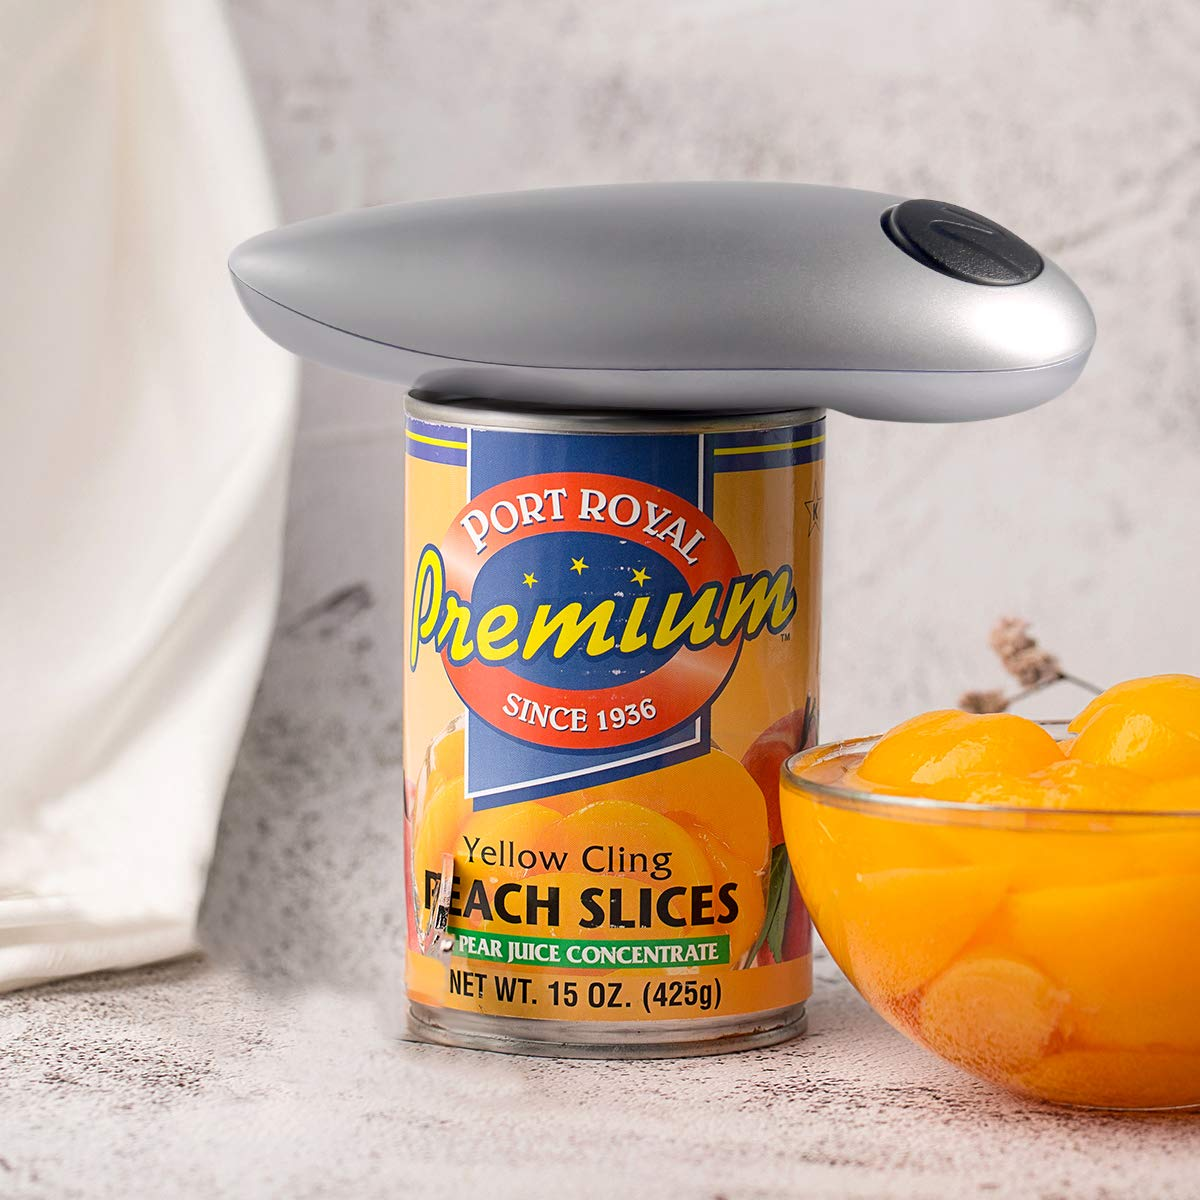 Electric Can Opener, Smooth Edge Automatic Can Opener for Any Size, Best Kitchen Gadget for Arthritis and Seniors (GrayClassic1) by instecho (Image #6)